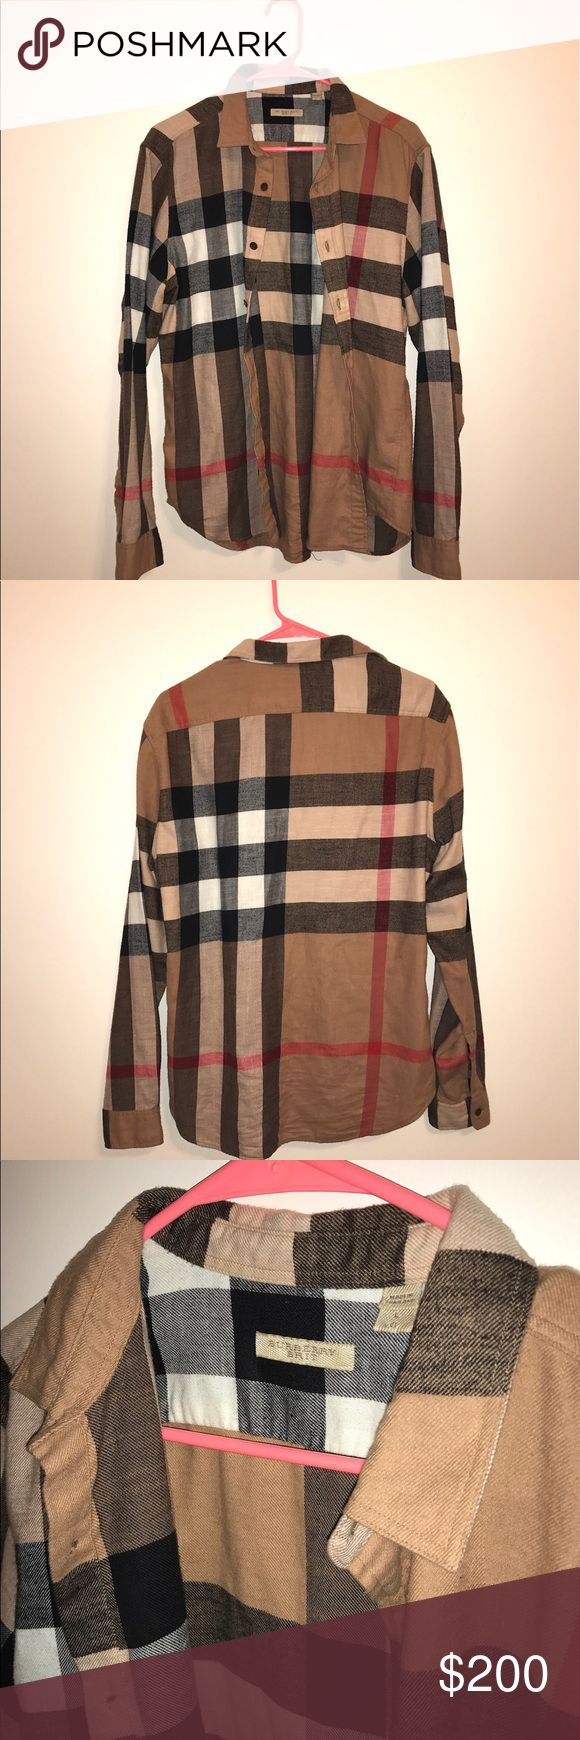 Burberry Brit Men's Cotton Shirt This is a BURBERRY BRIT MENS 100% COTTON SHIRT! It is a large and made in Thailand. It is new without tags. It is Machine Washable. Burberry Shirts Dress Shirts